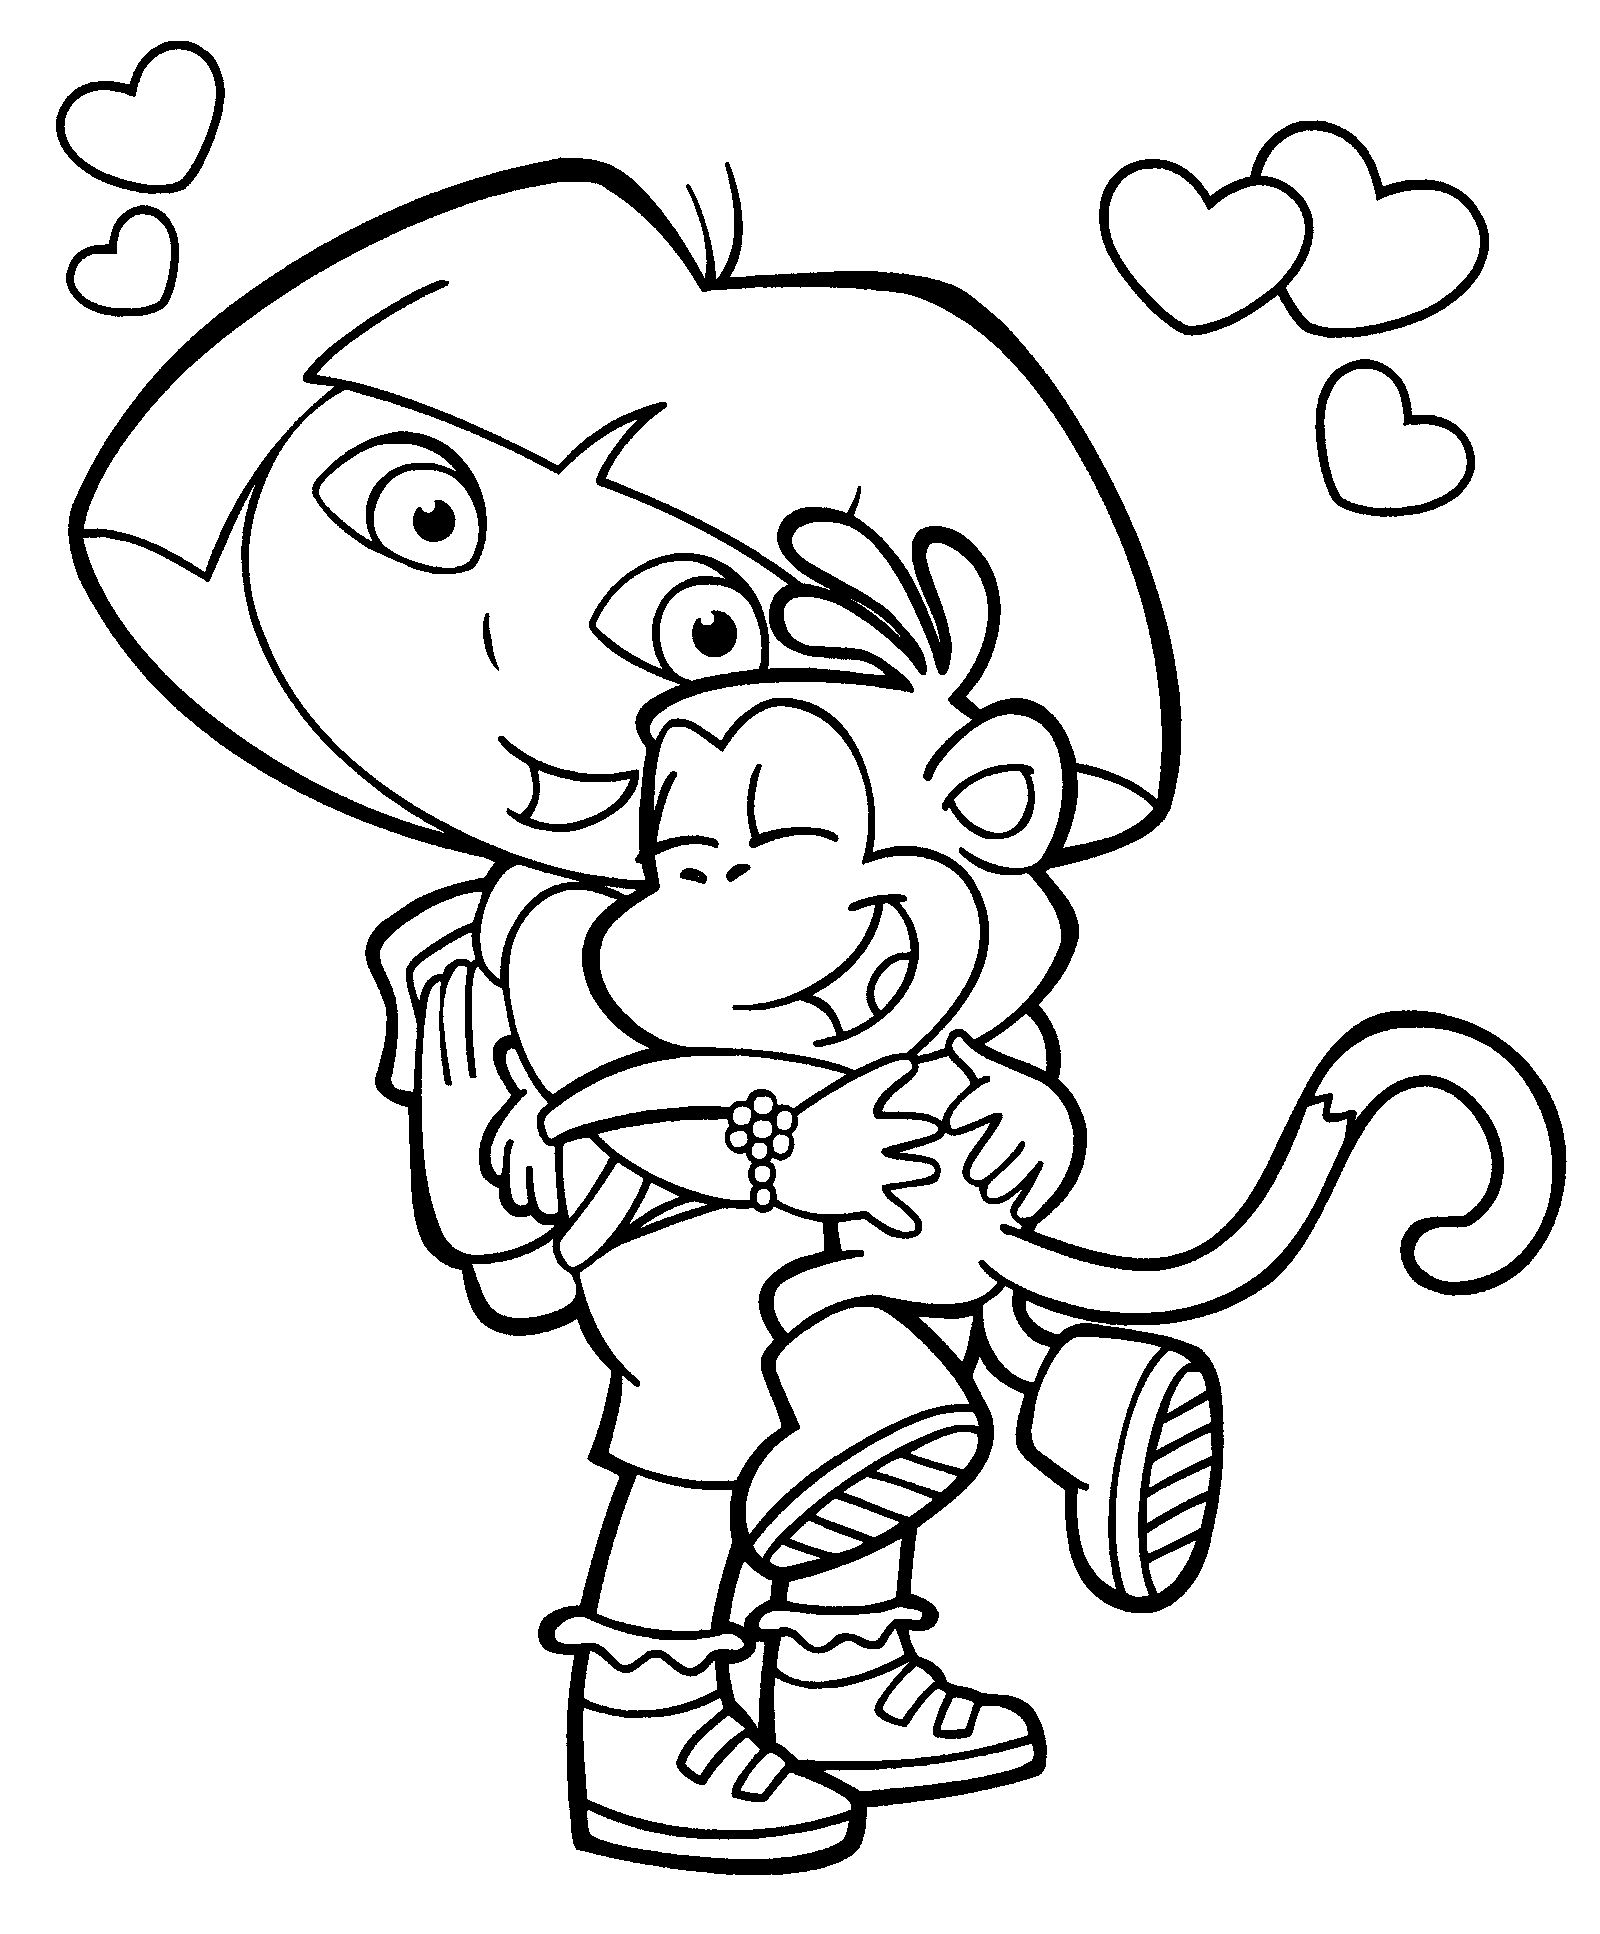 Dora Coloring Lots Of Dora Coloring Pages And Printables Cute Coloring Pages Dora Coloring Nick Jr Coloring Pages